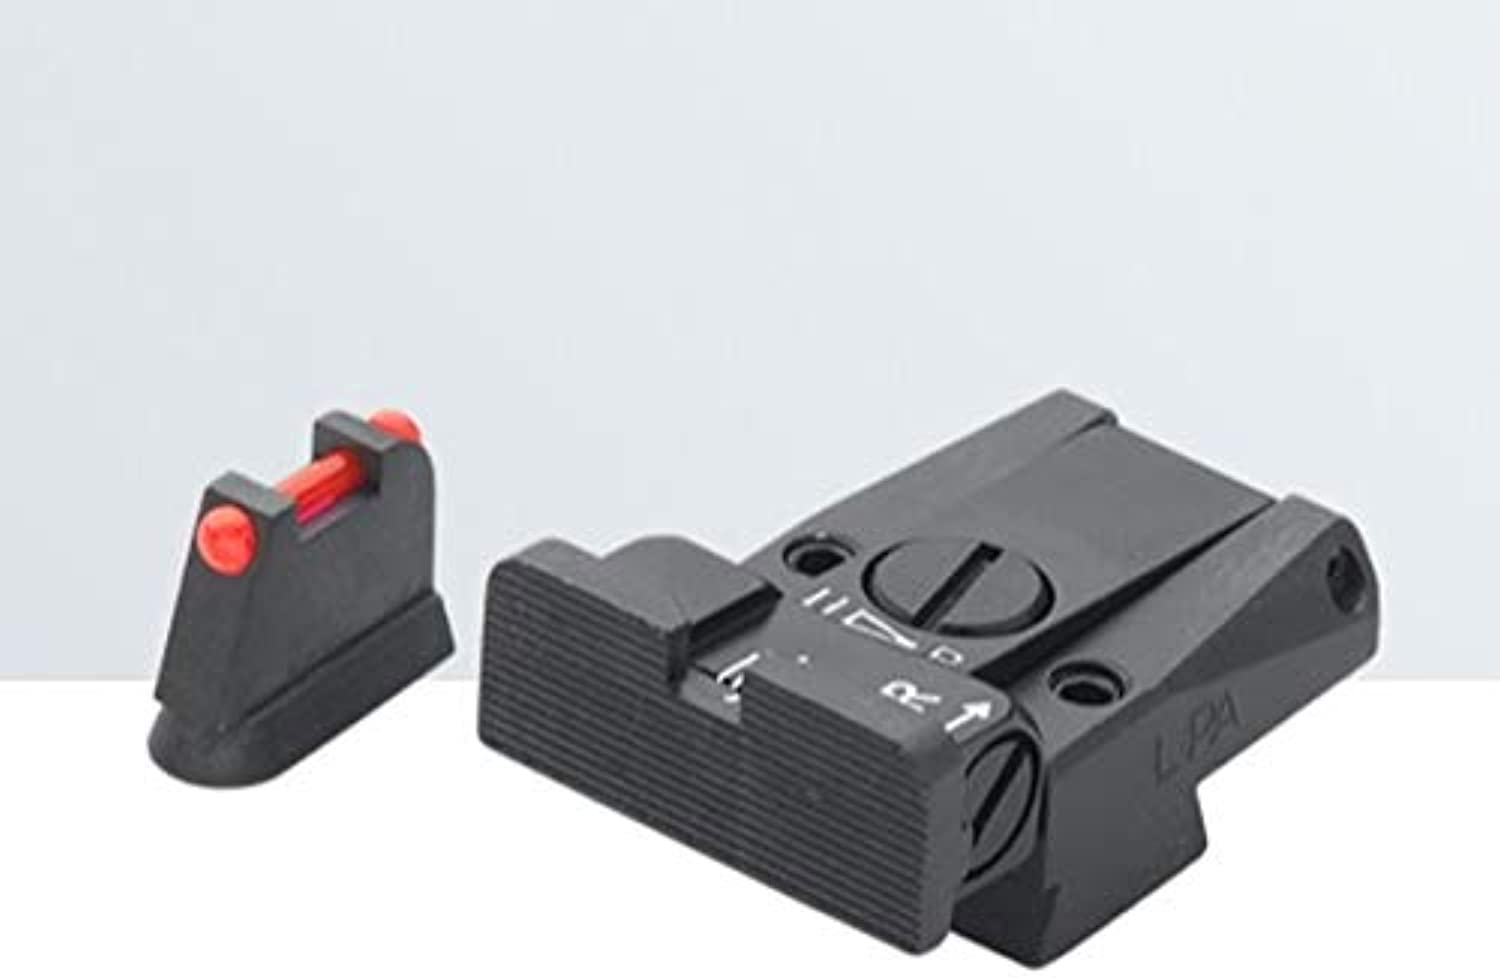 LPA SIGHTS Sight Set Set for for for CZ 75 75B 85, P07 Duty